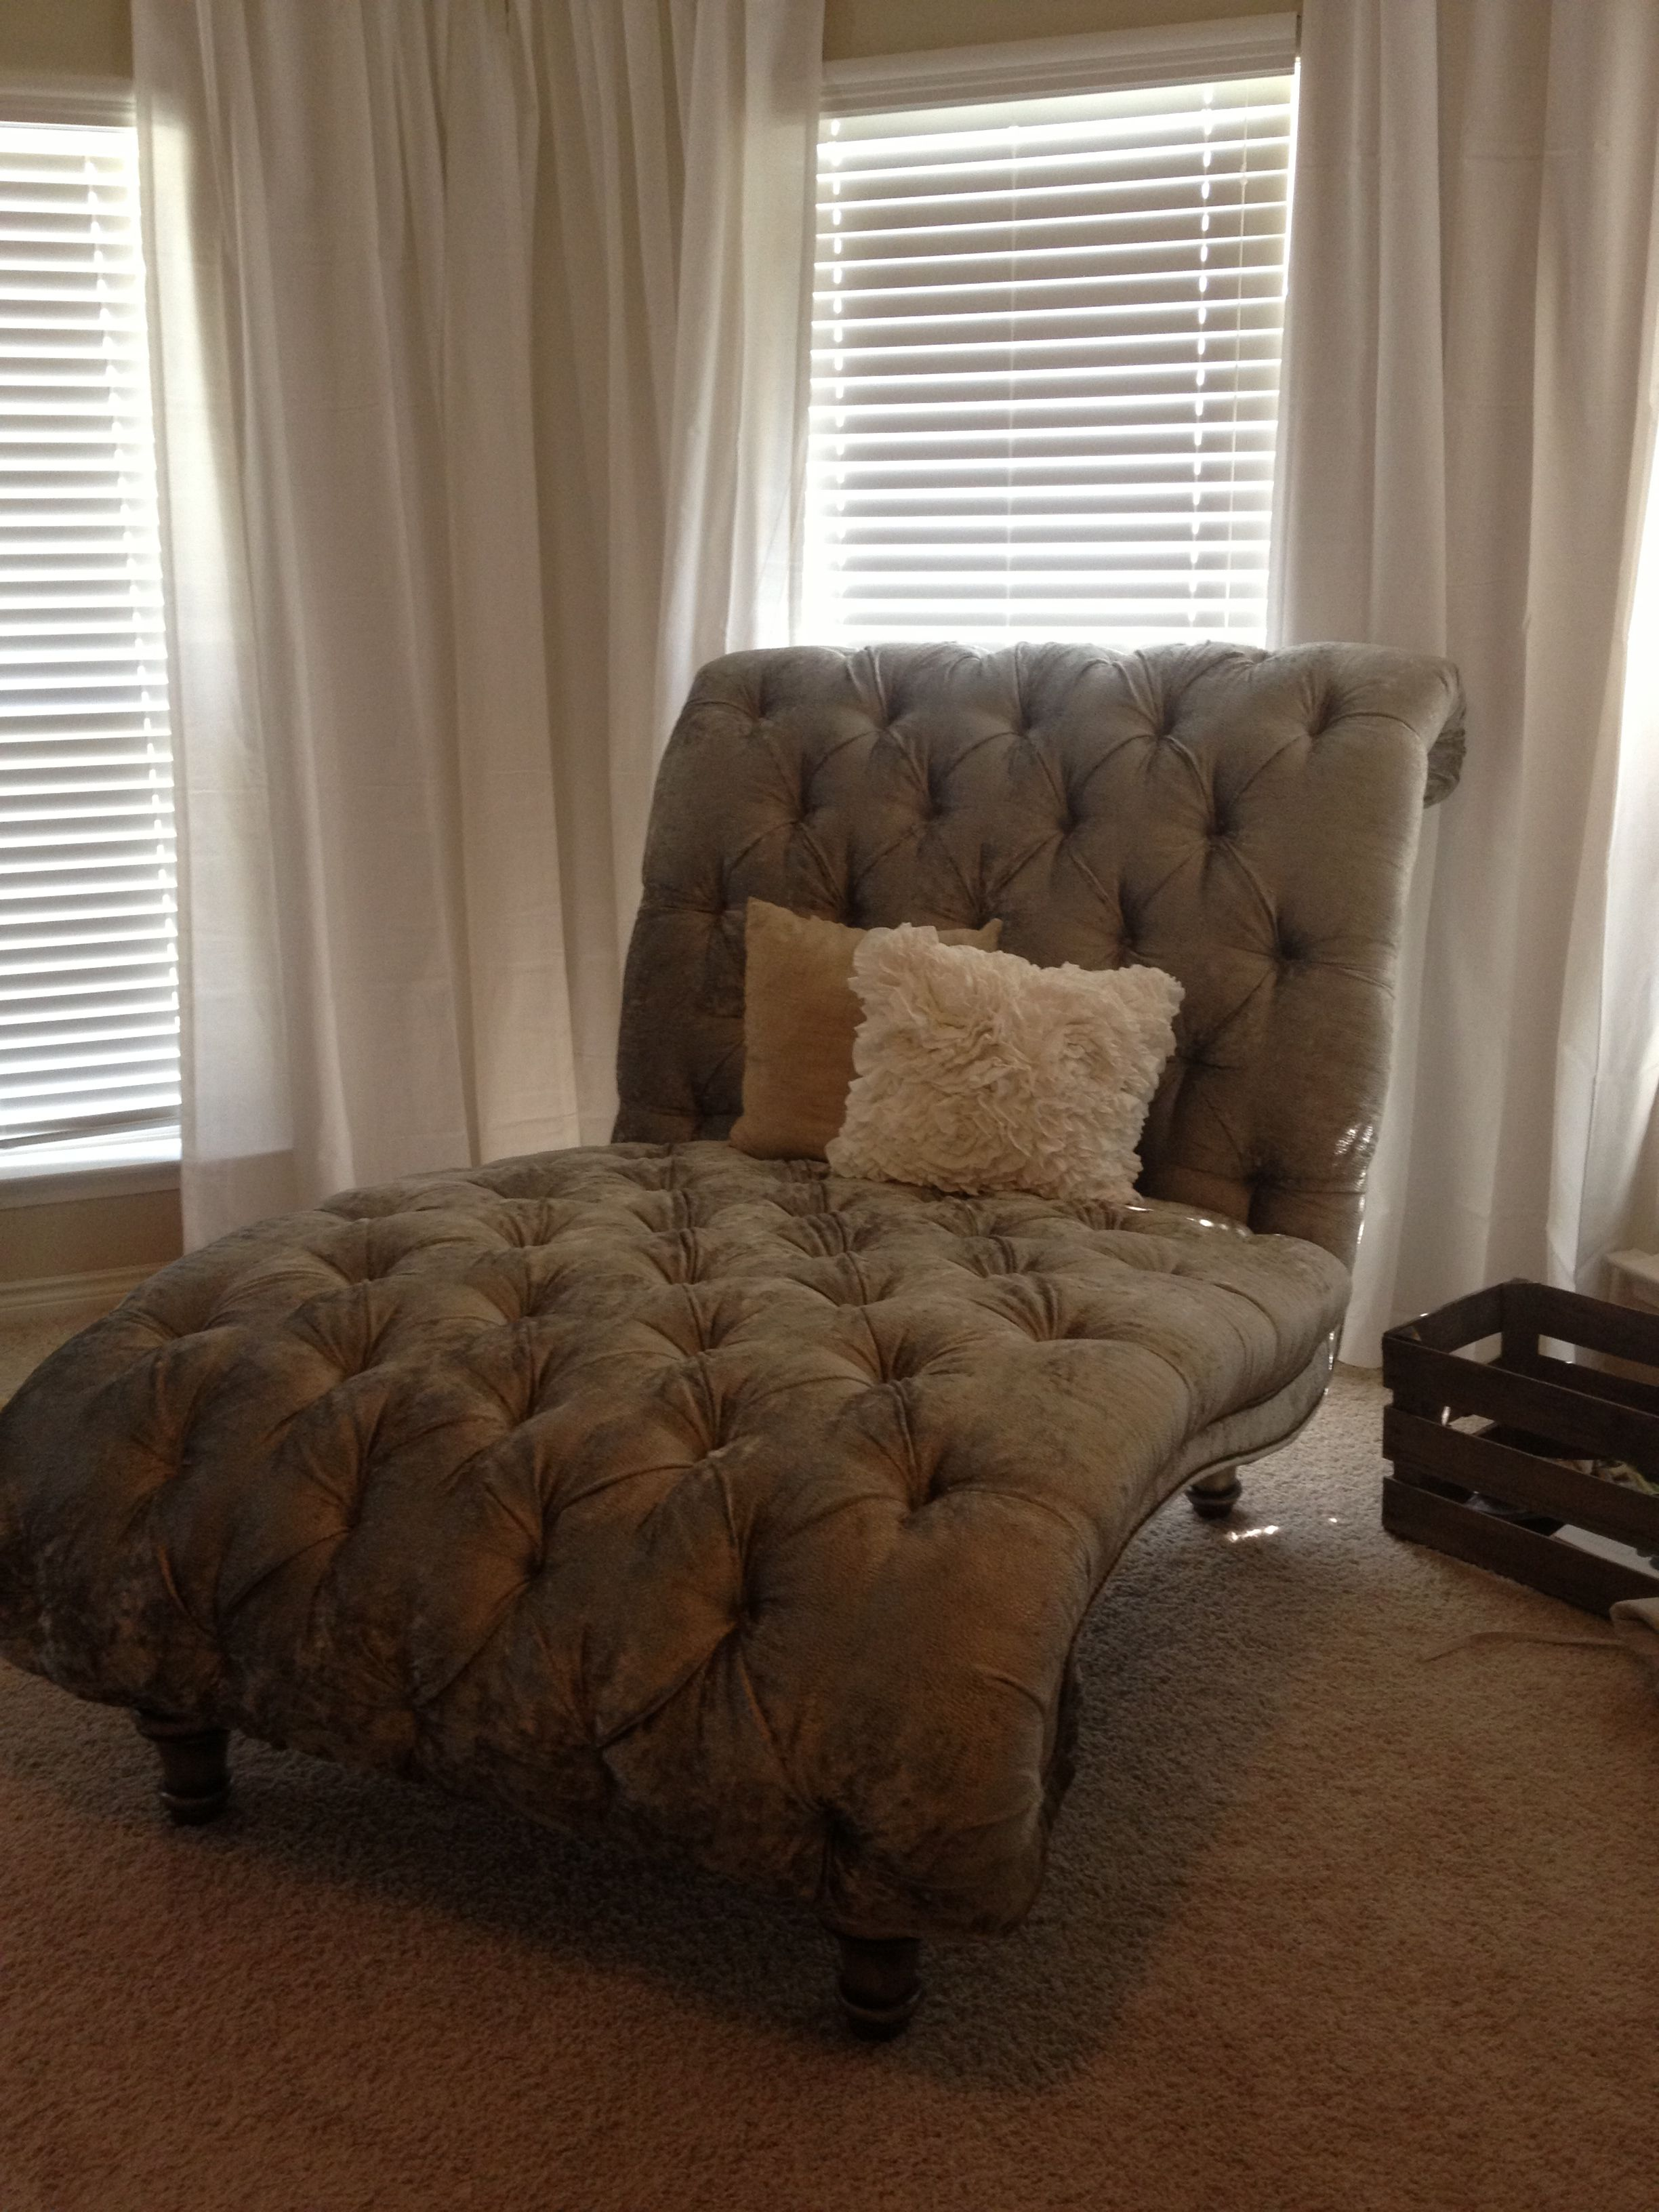 Tufted double chaise lounge chair in our master bedroom. Different ...